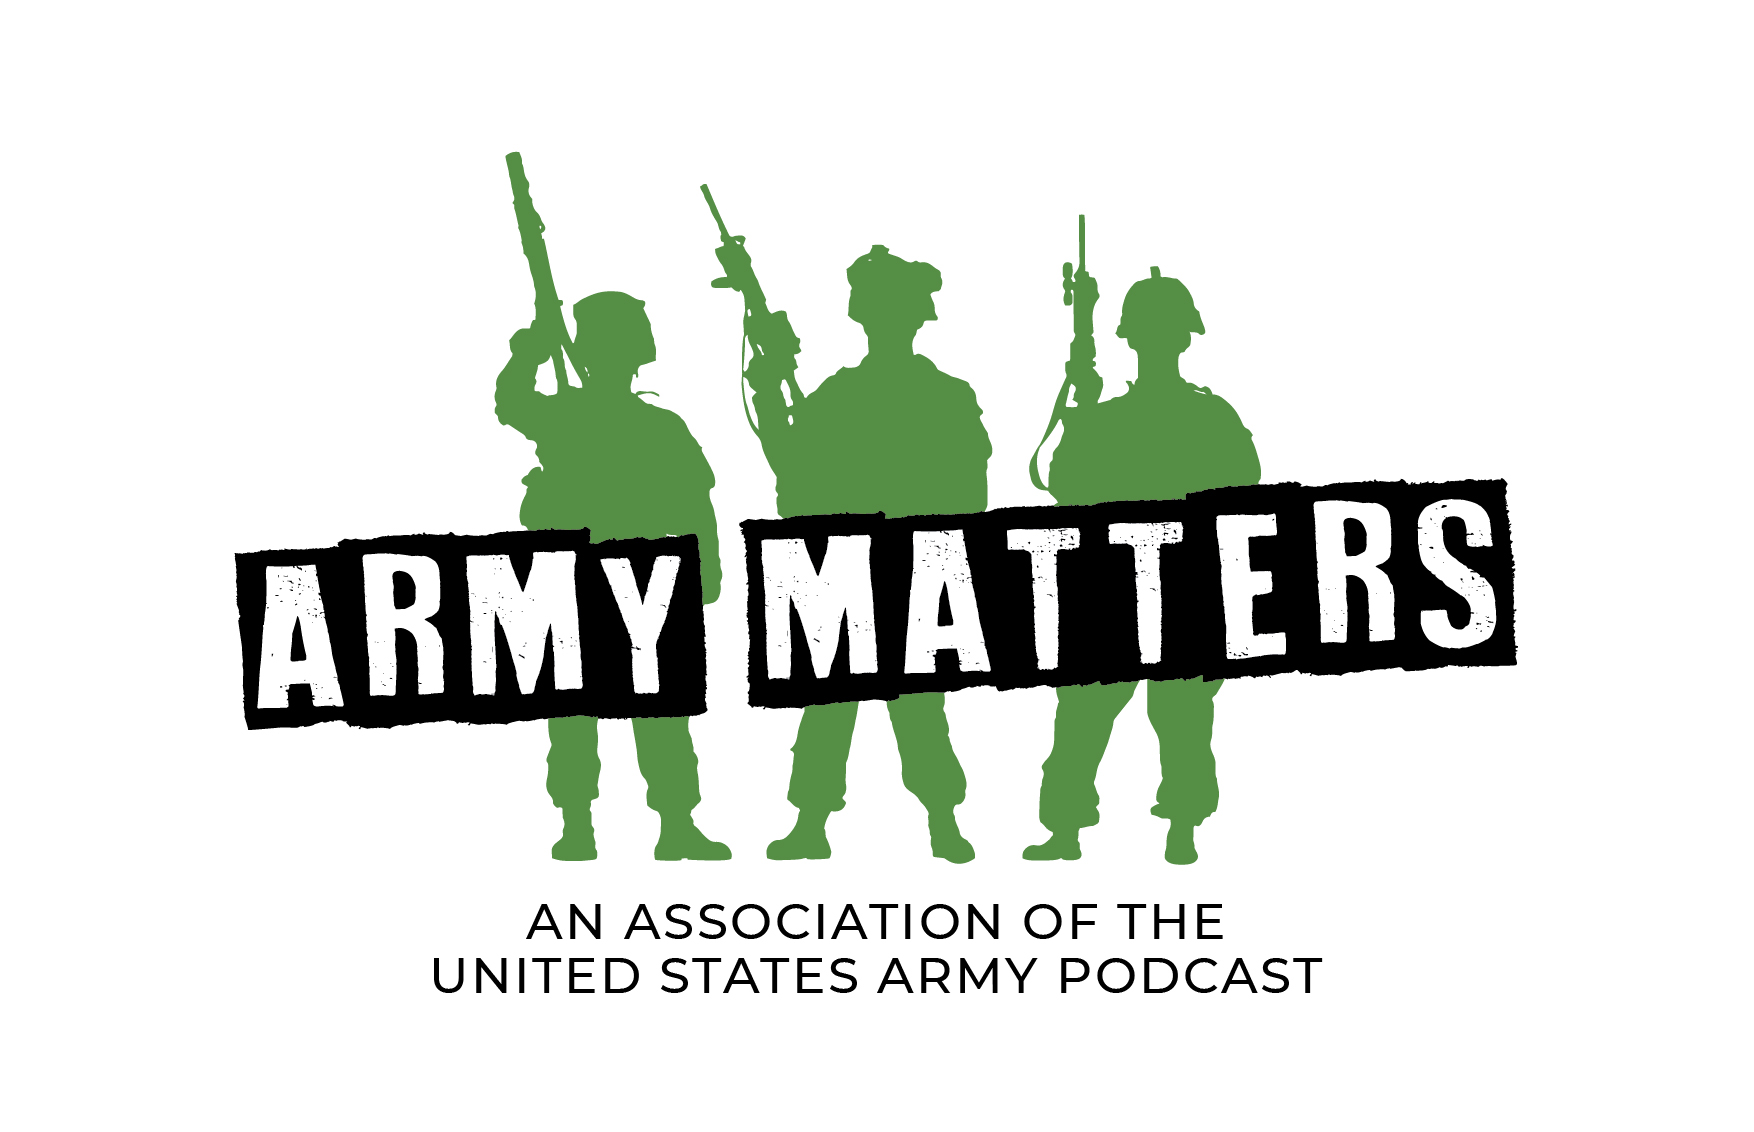 army matters social